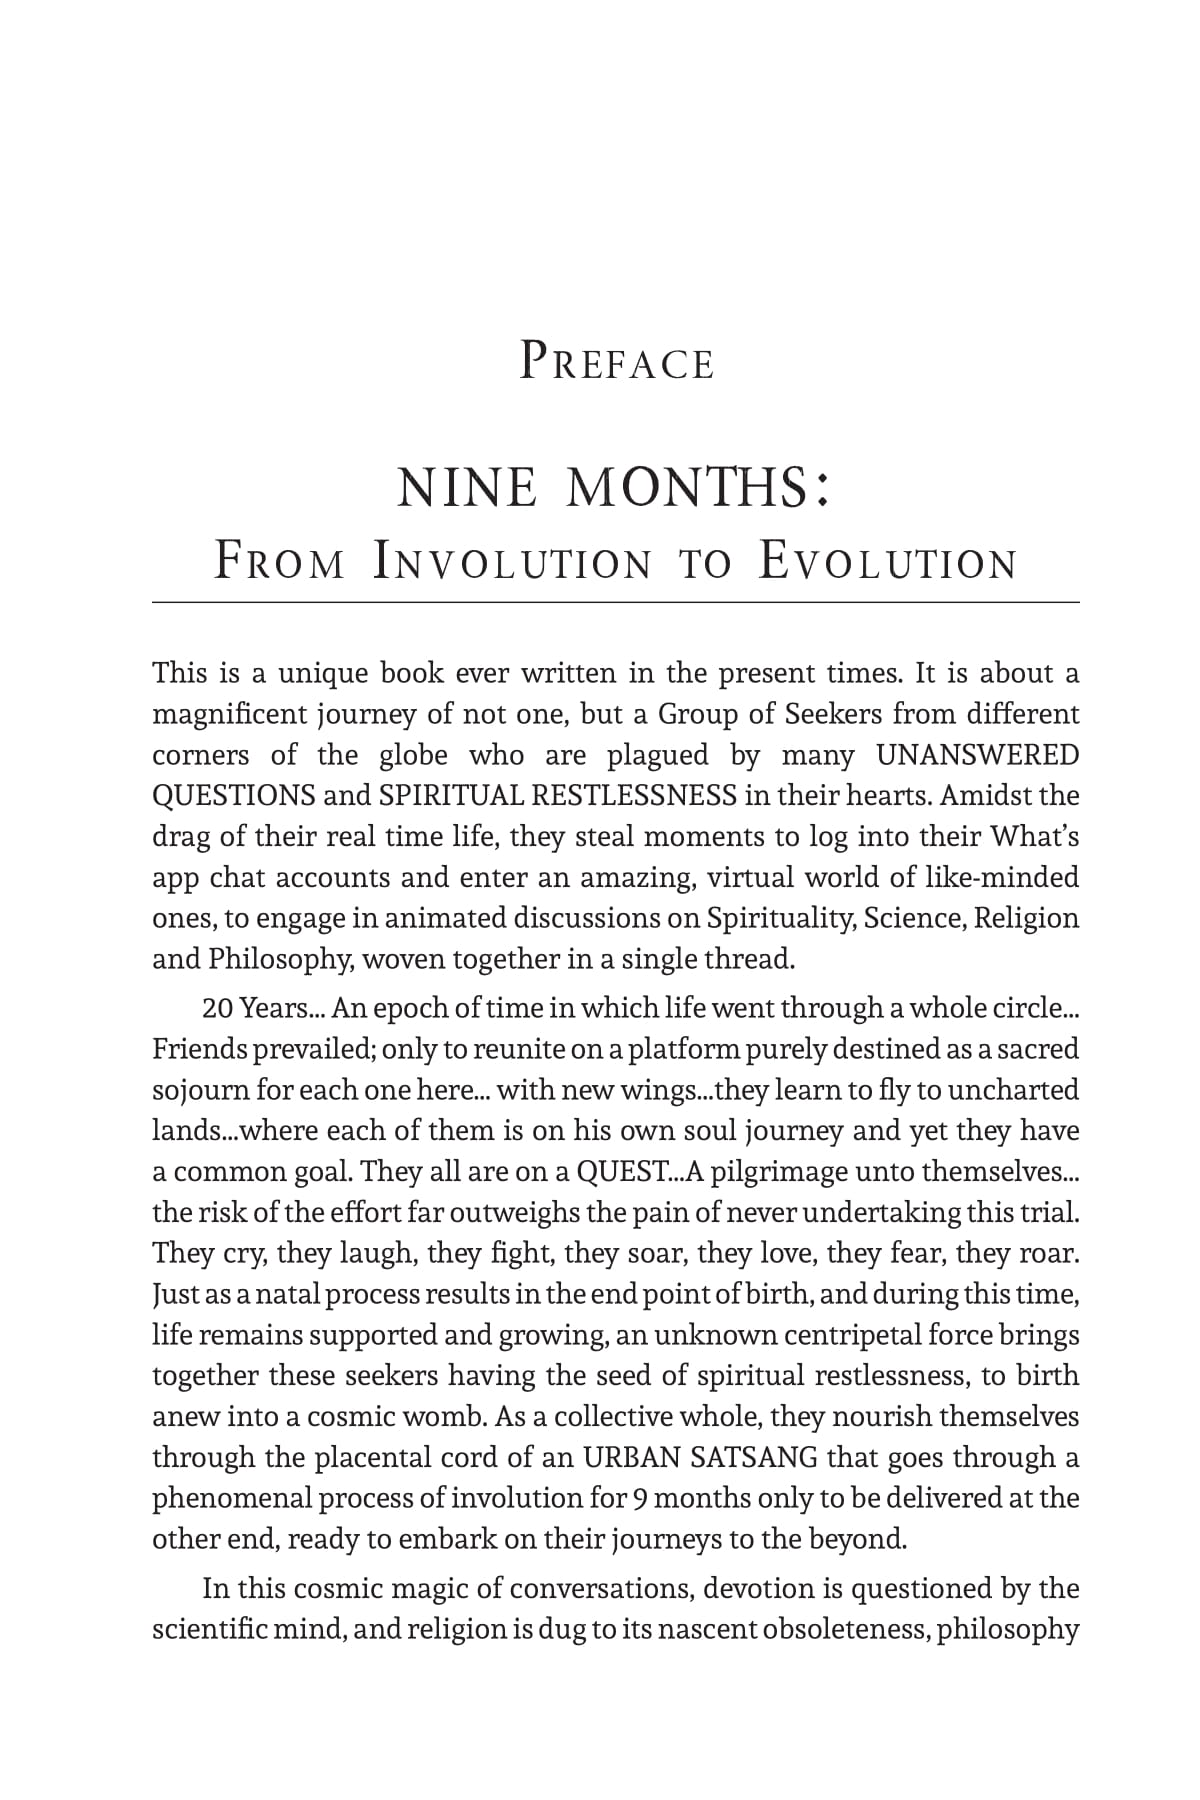 9-Months-From-Involution-to-Evolution-Book-By-Dr-Pallavi-Kwatra-015.jpg